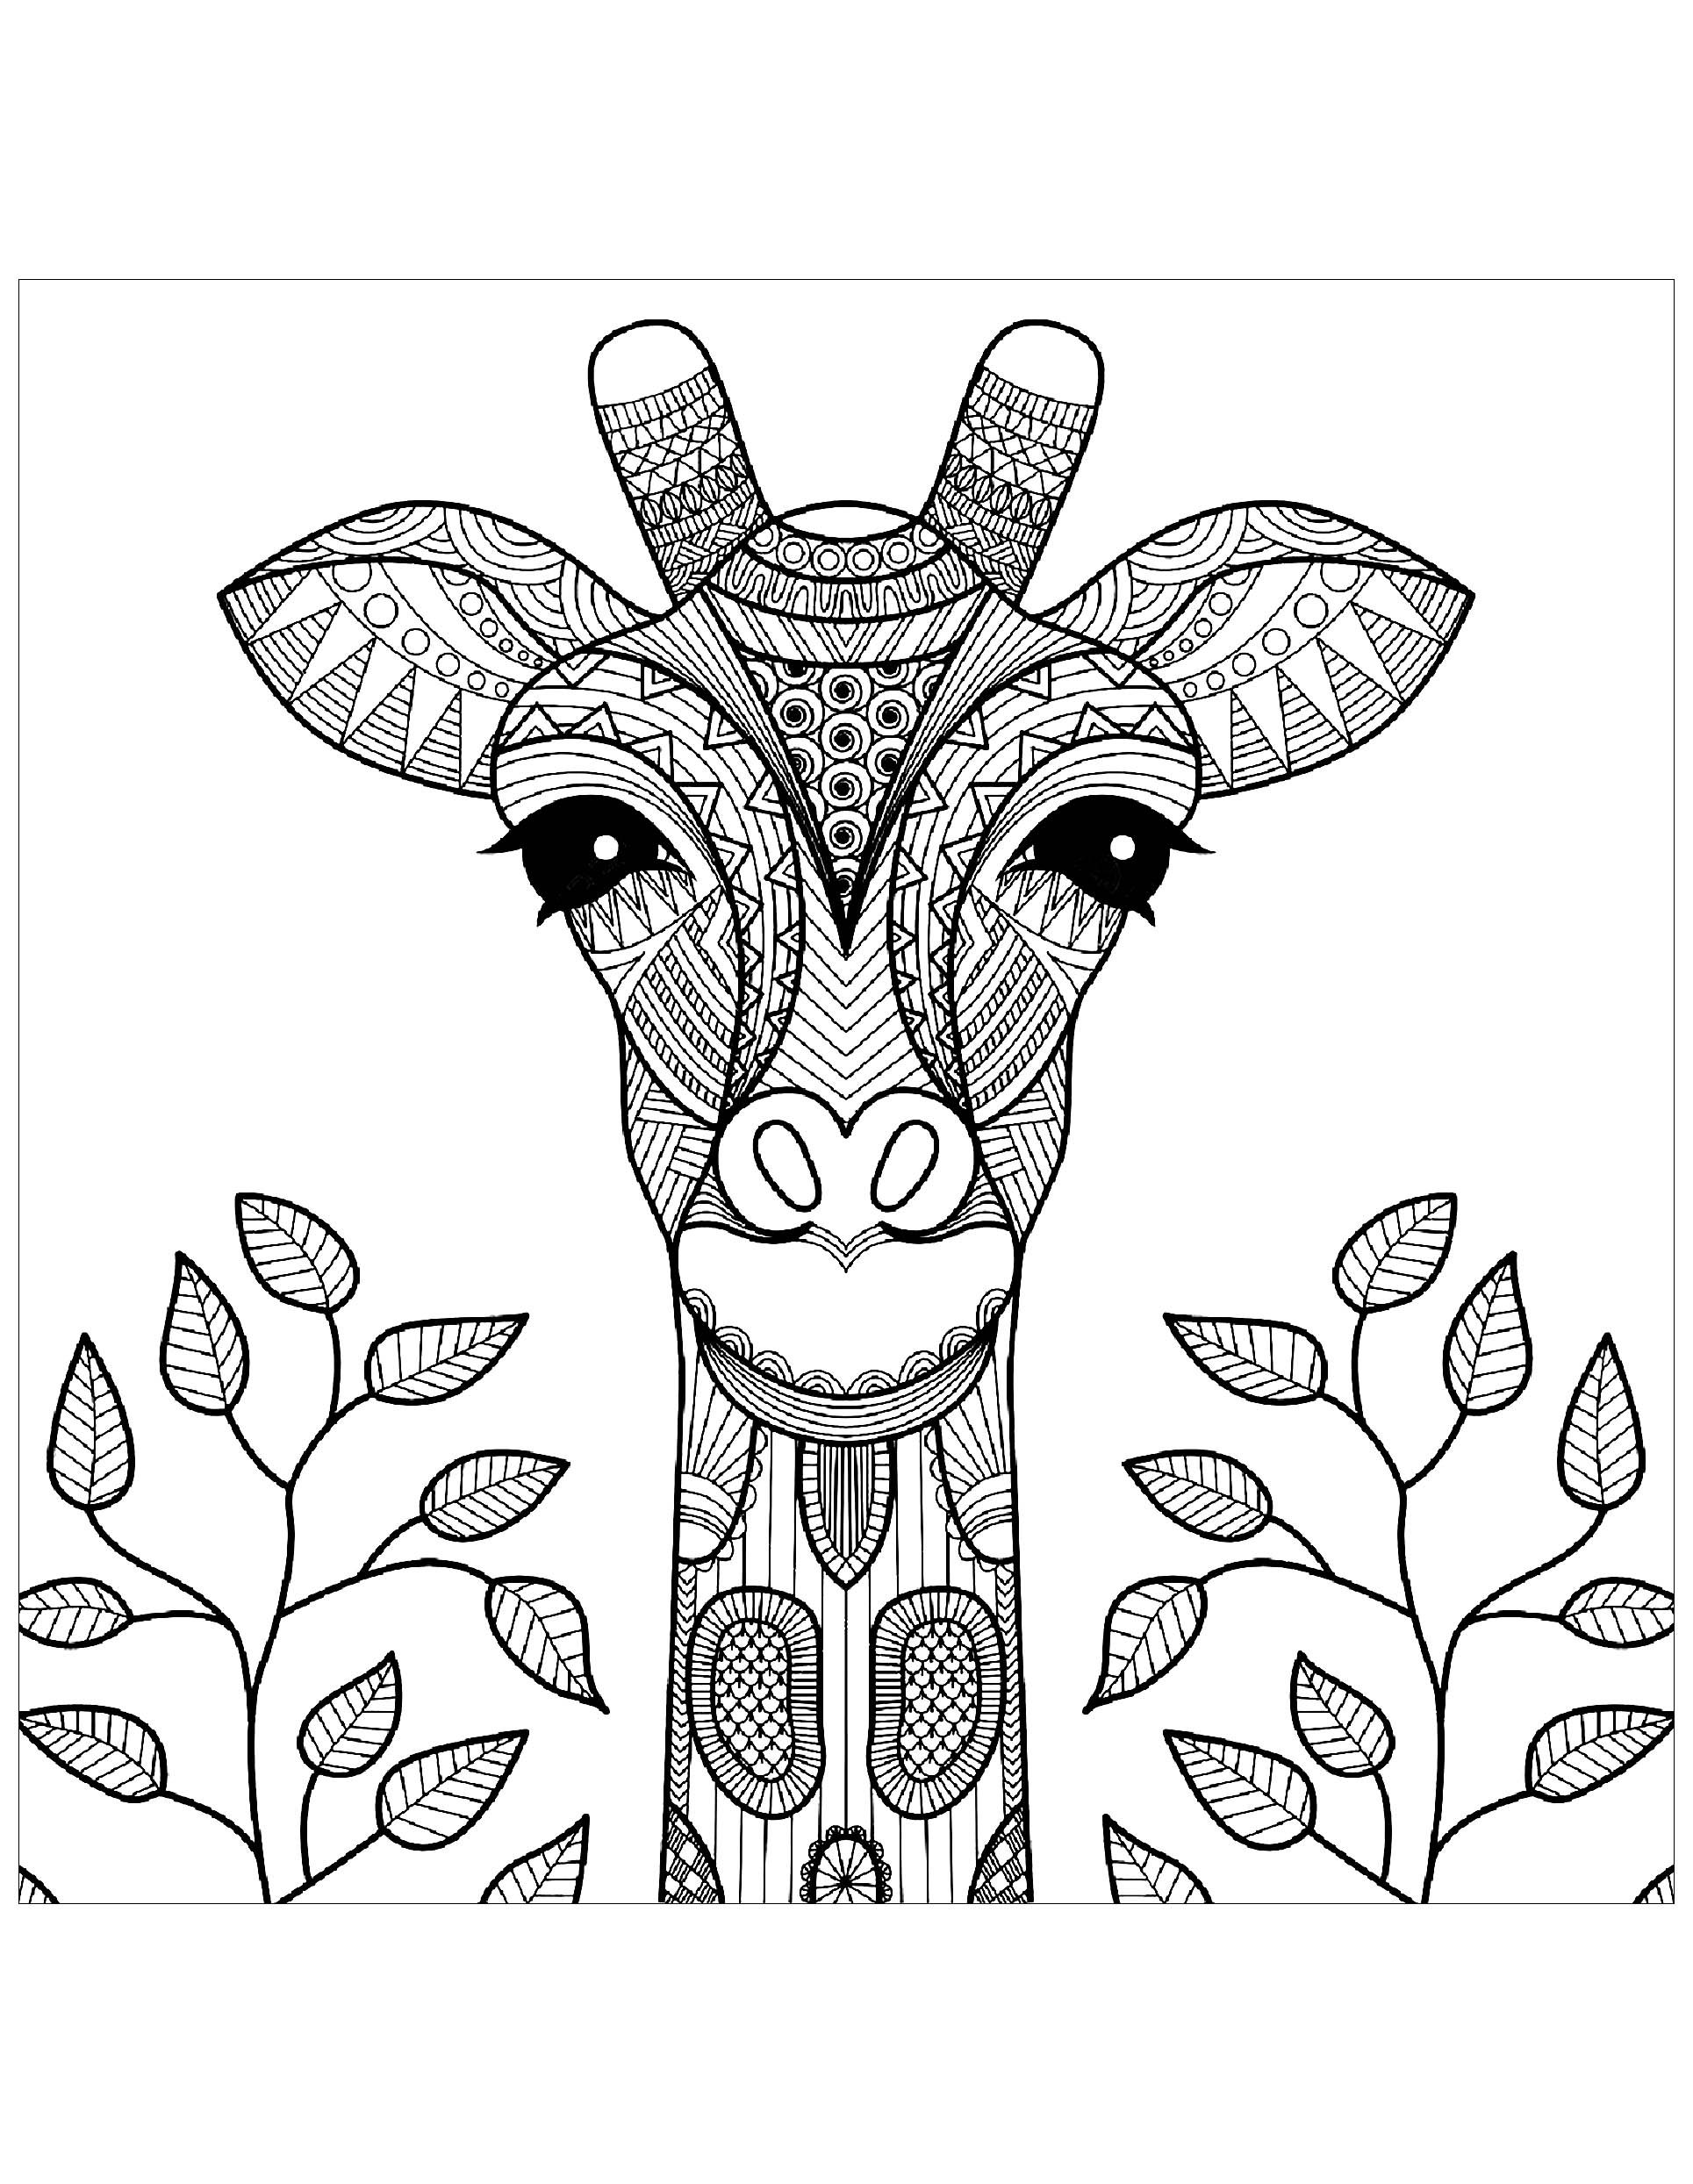 giraffes coloring pages giraffe head with leaves giraffes adult coloring pages coloring pages giraffes